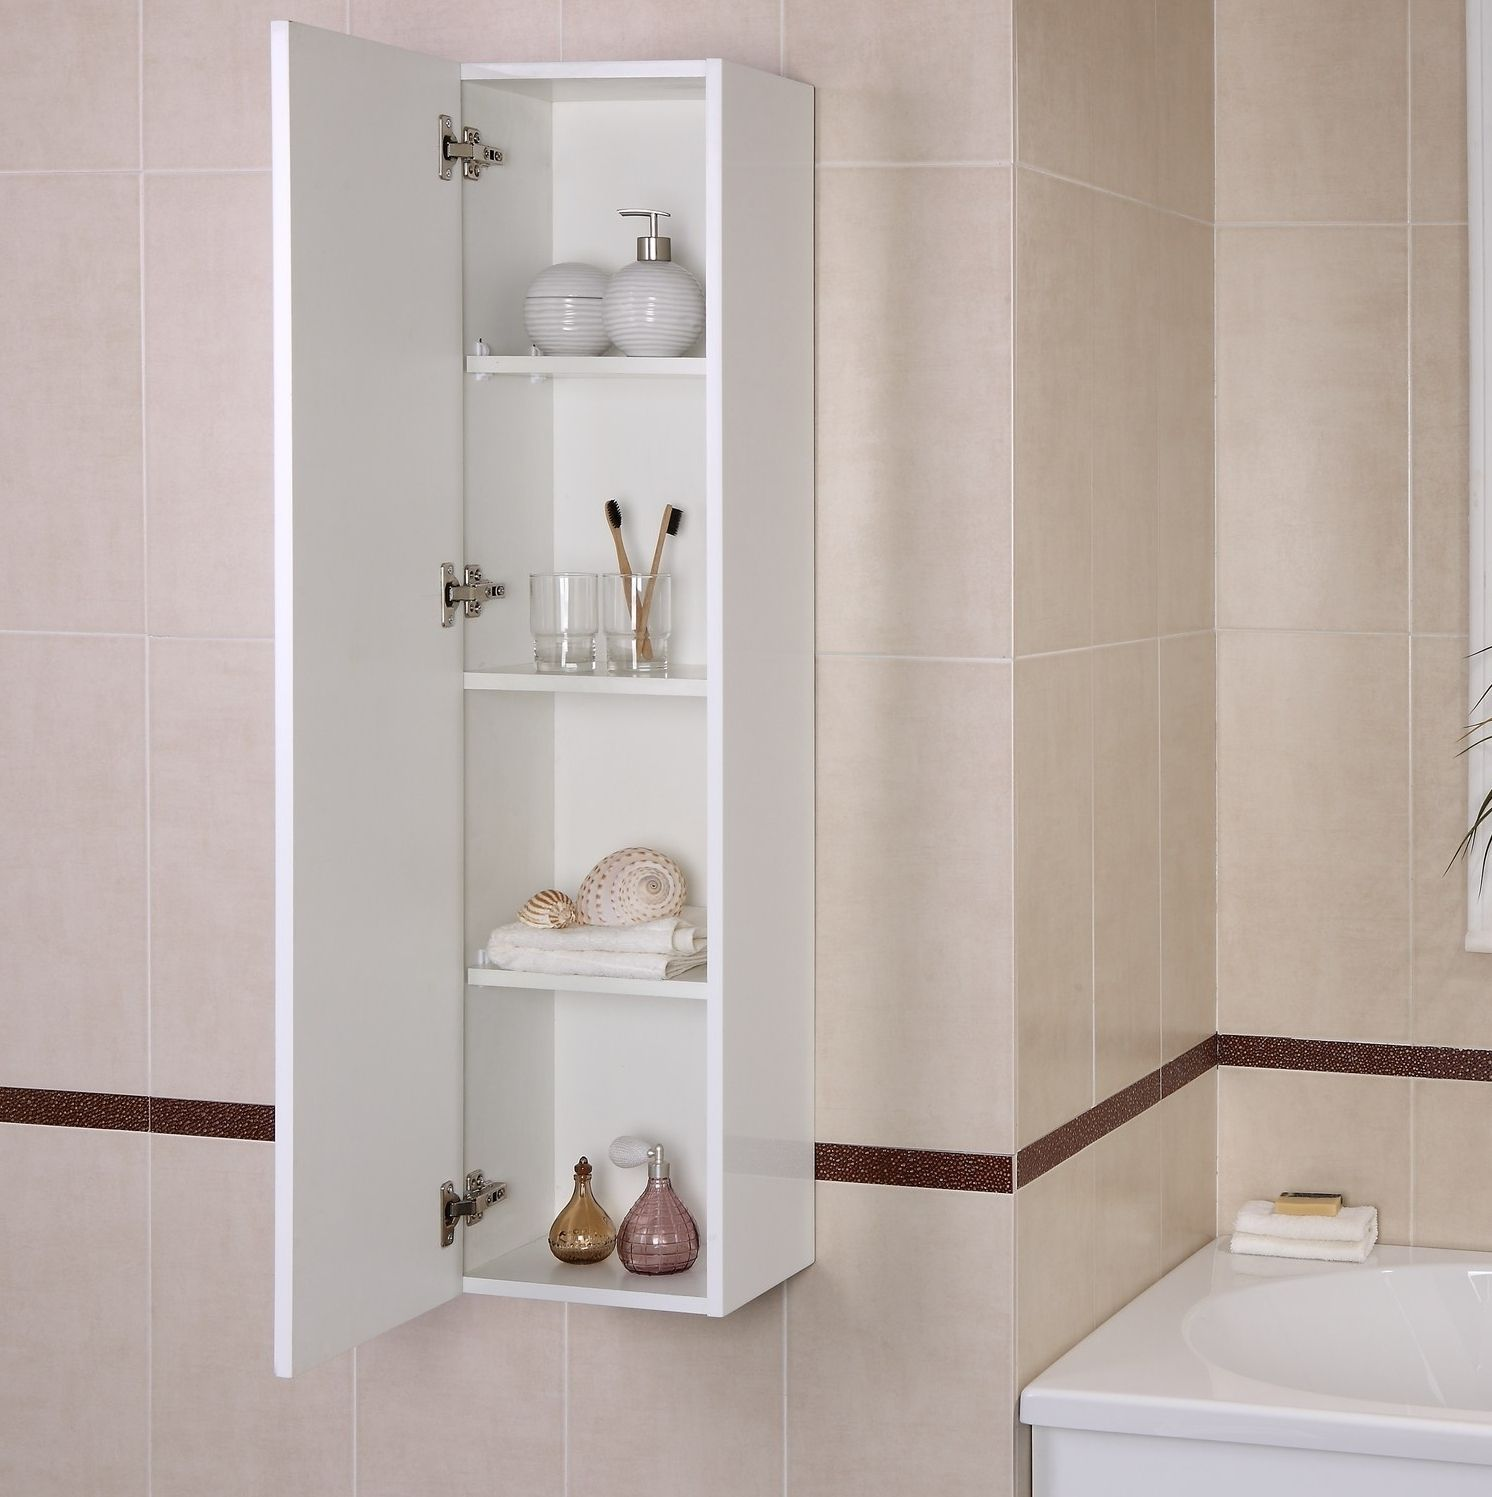 Small Bathroom Storage - Best Small Bathroom Storage Ideas For